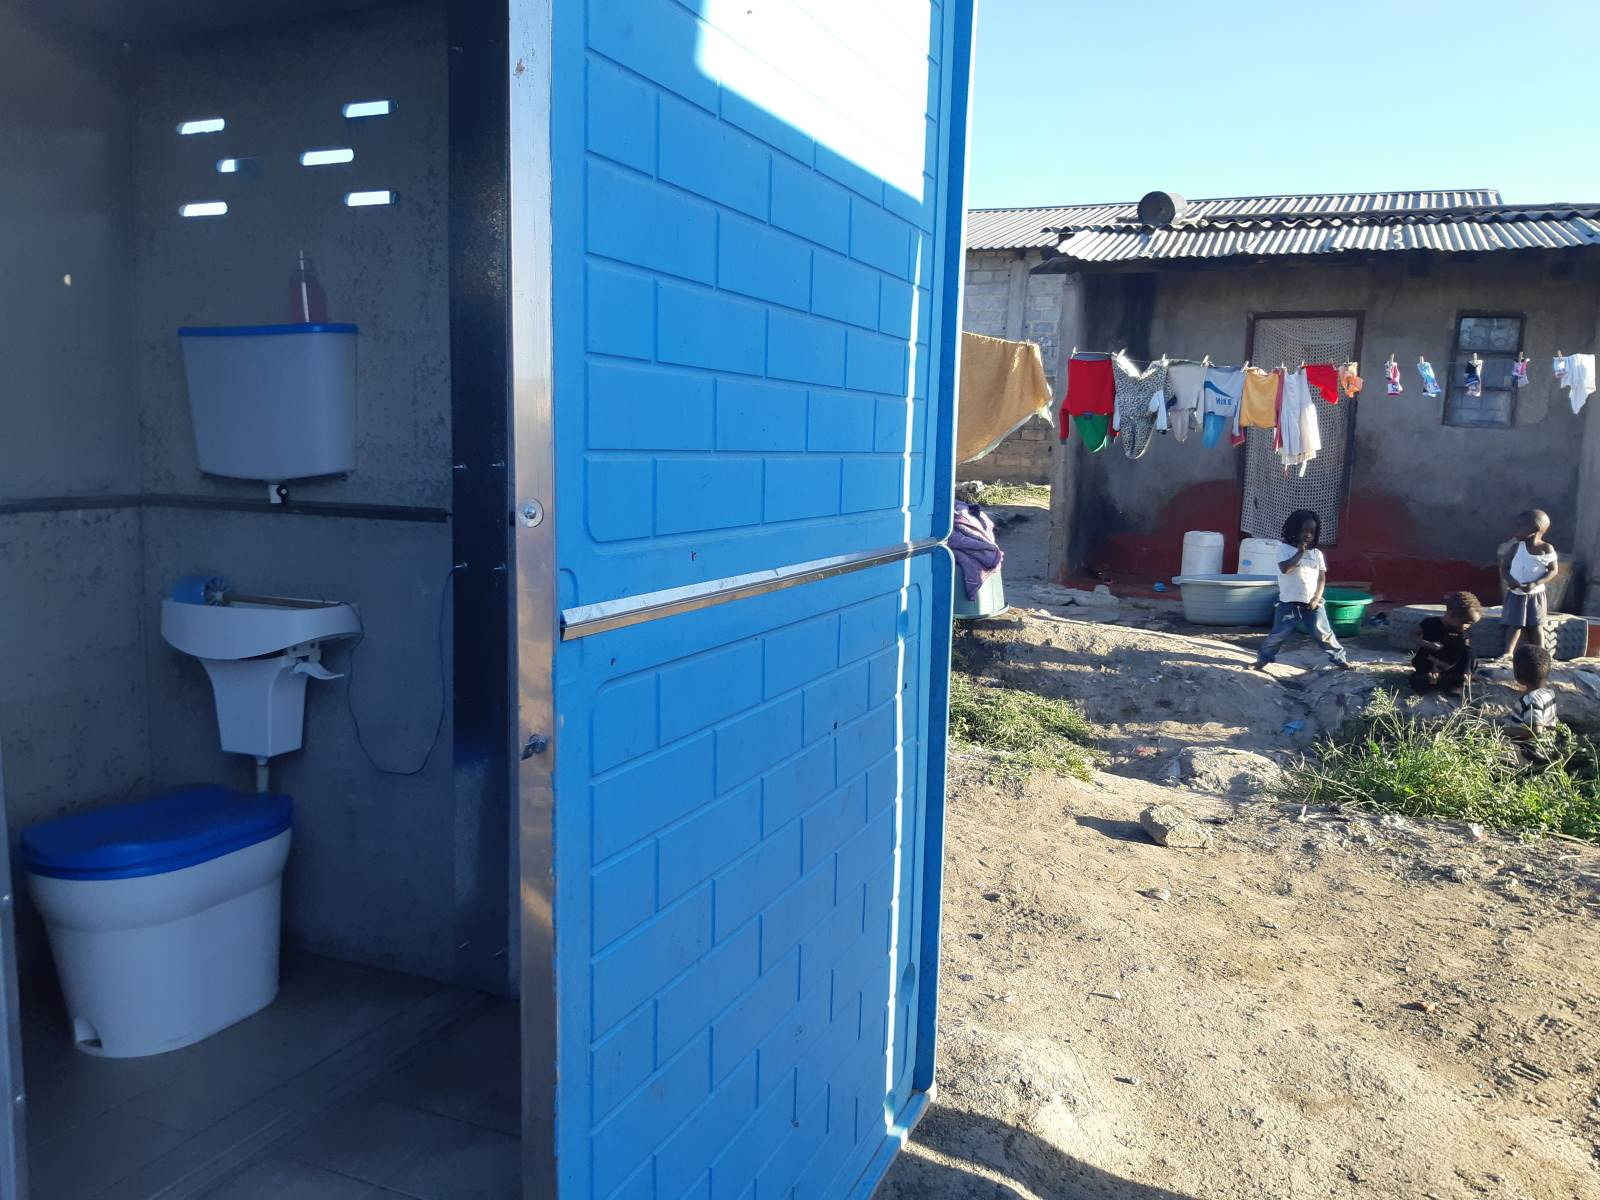 Inclusive Sanitation Regulation Framework developed